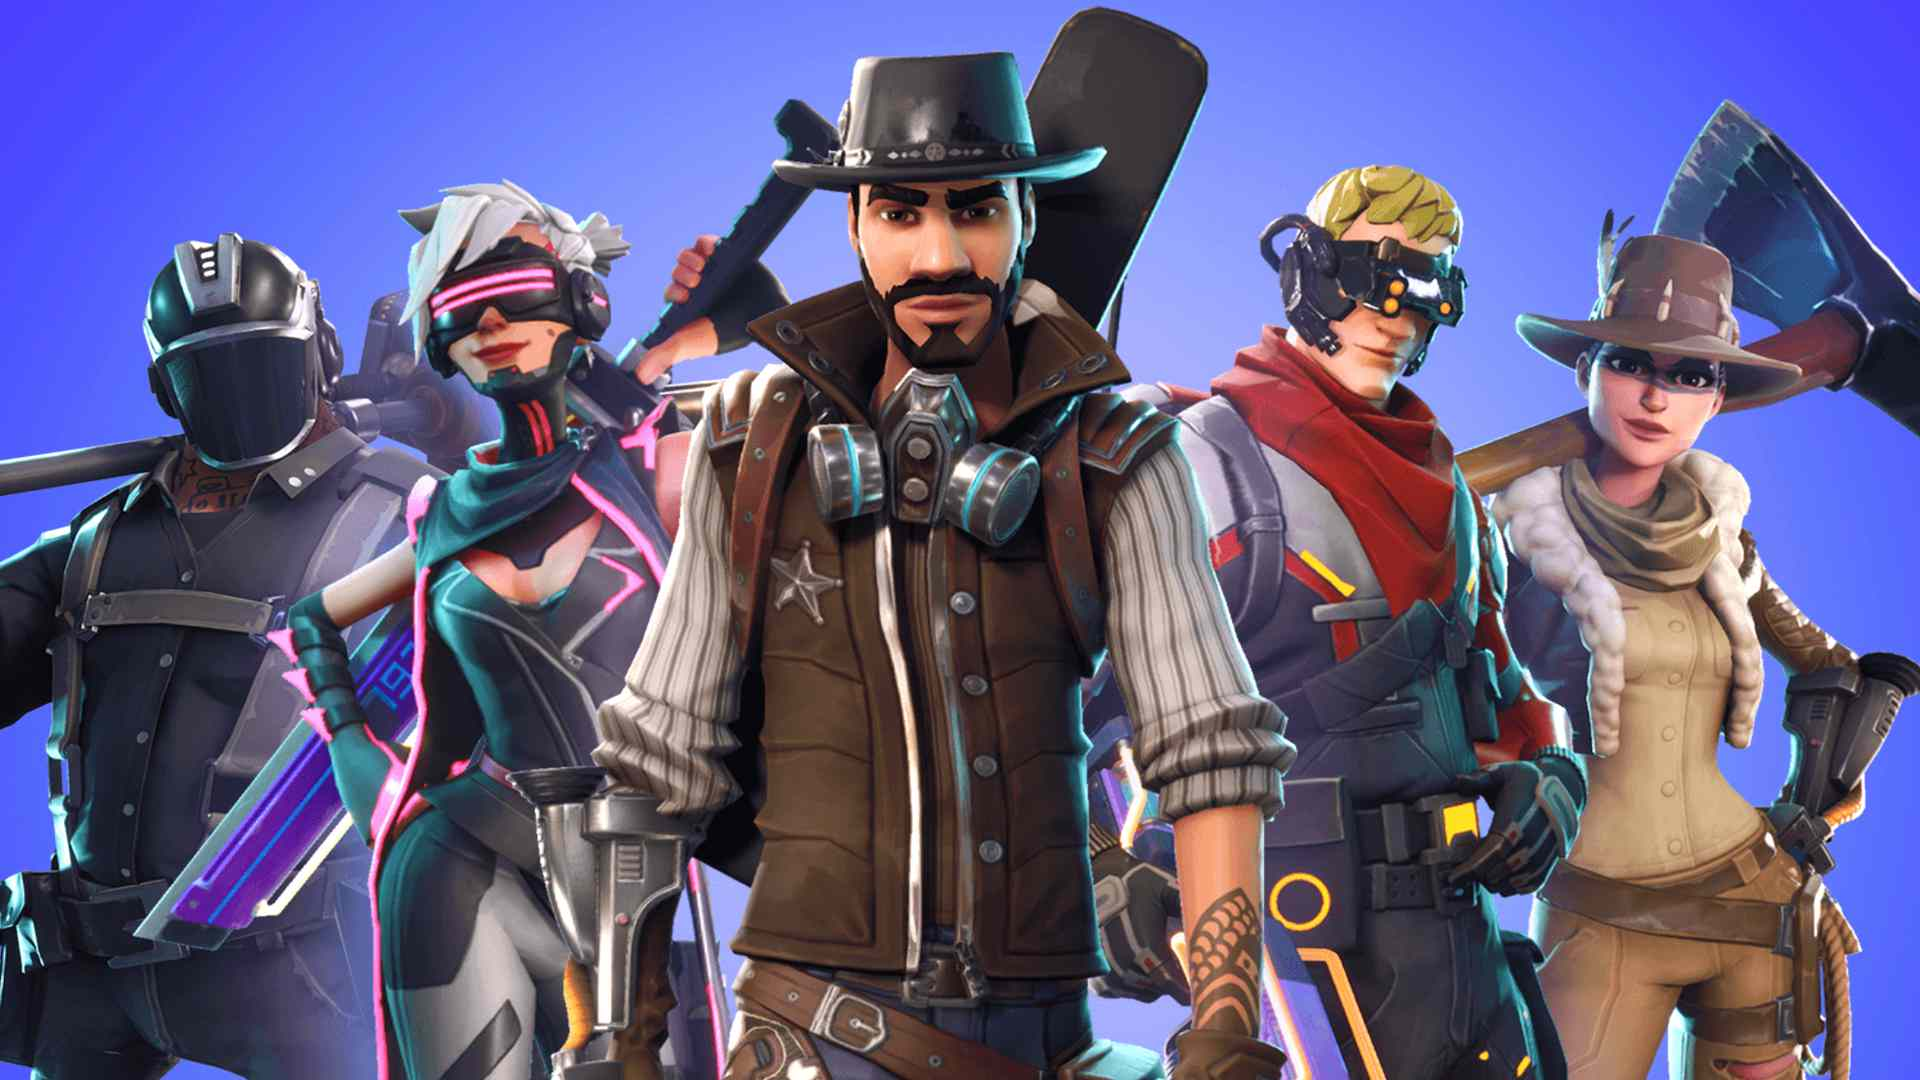 How To Get Fortnite On Xbox One The #1 battle royale game has come to online version! how to get fortnite on xbox one